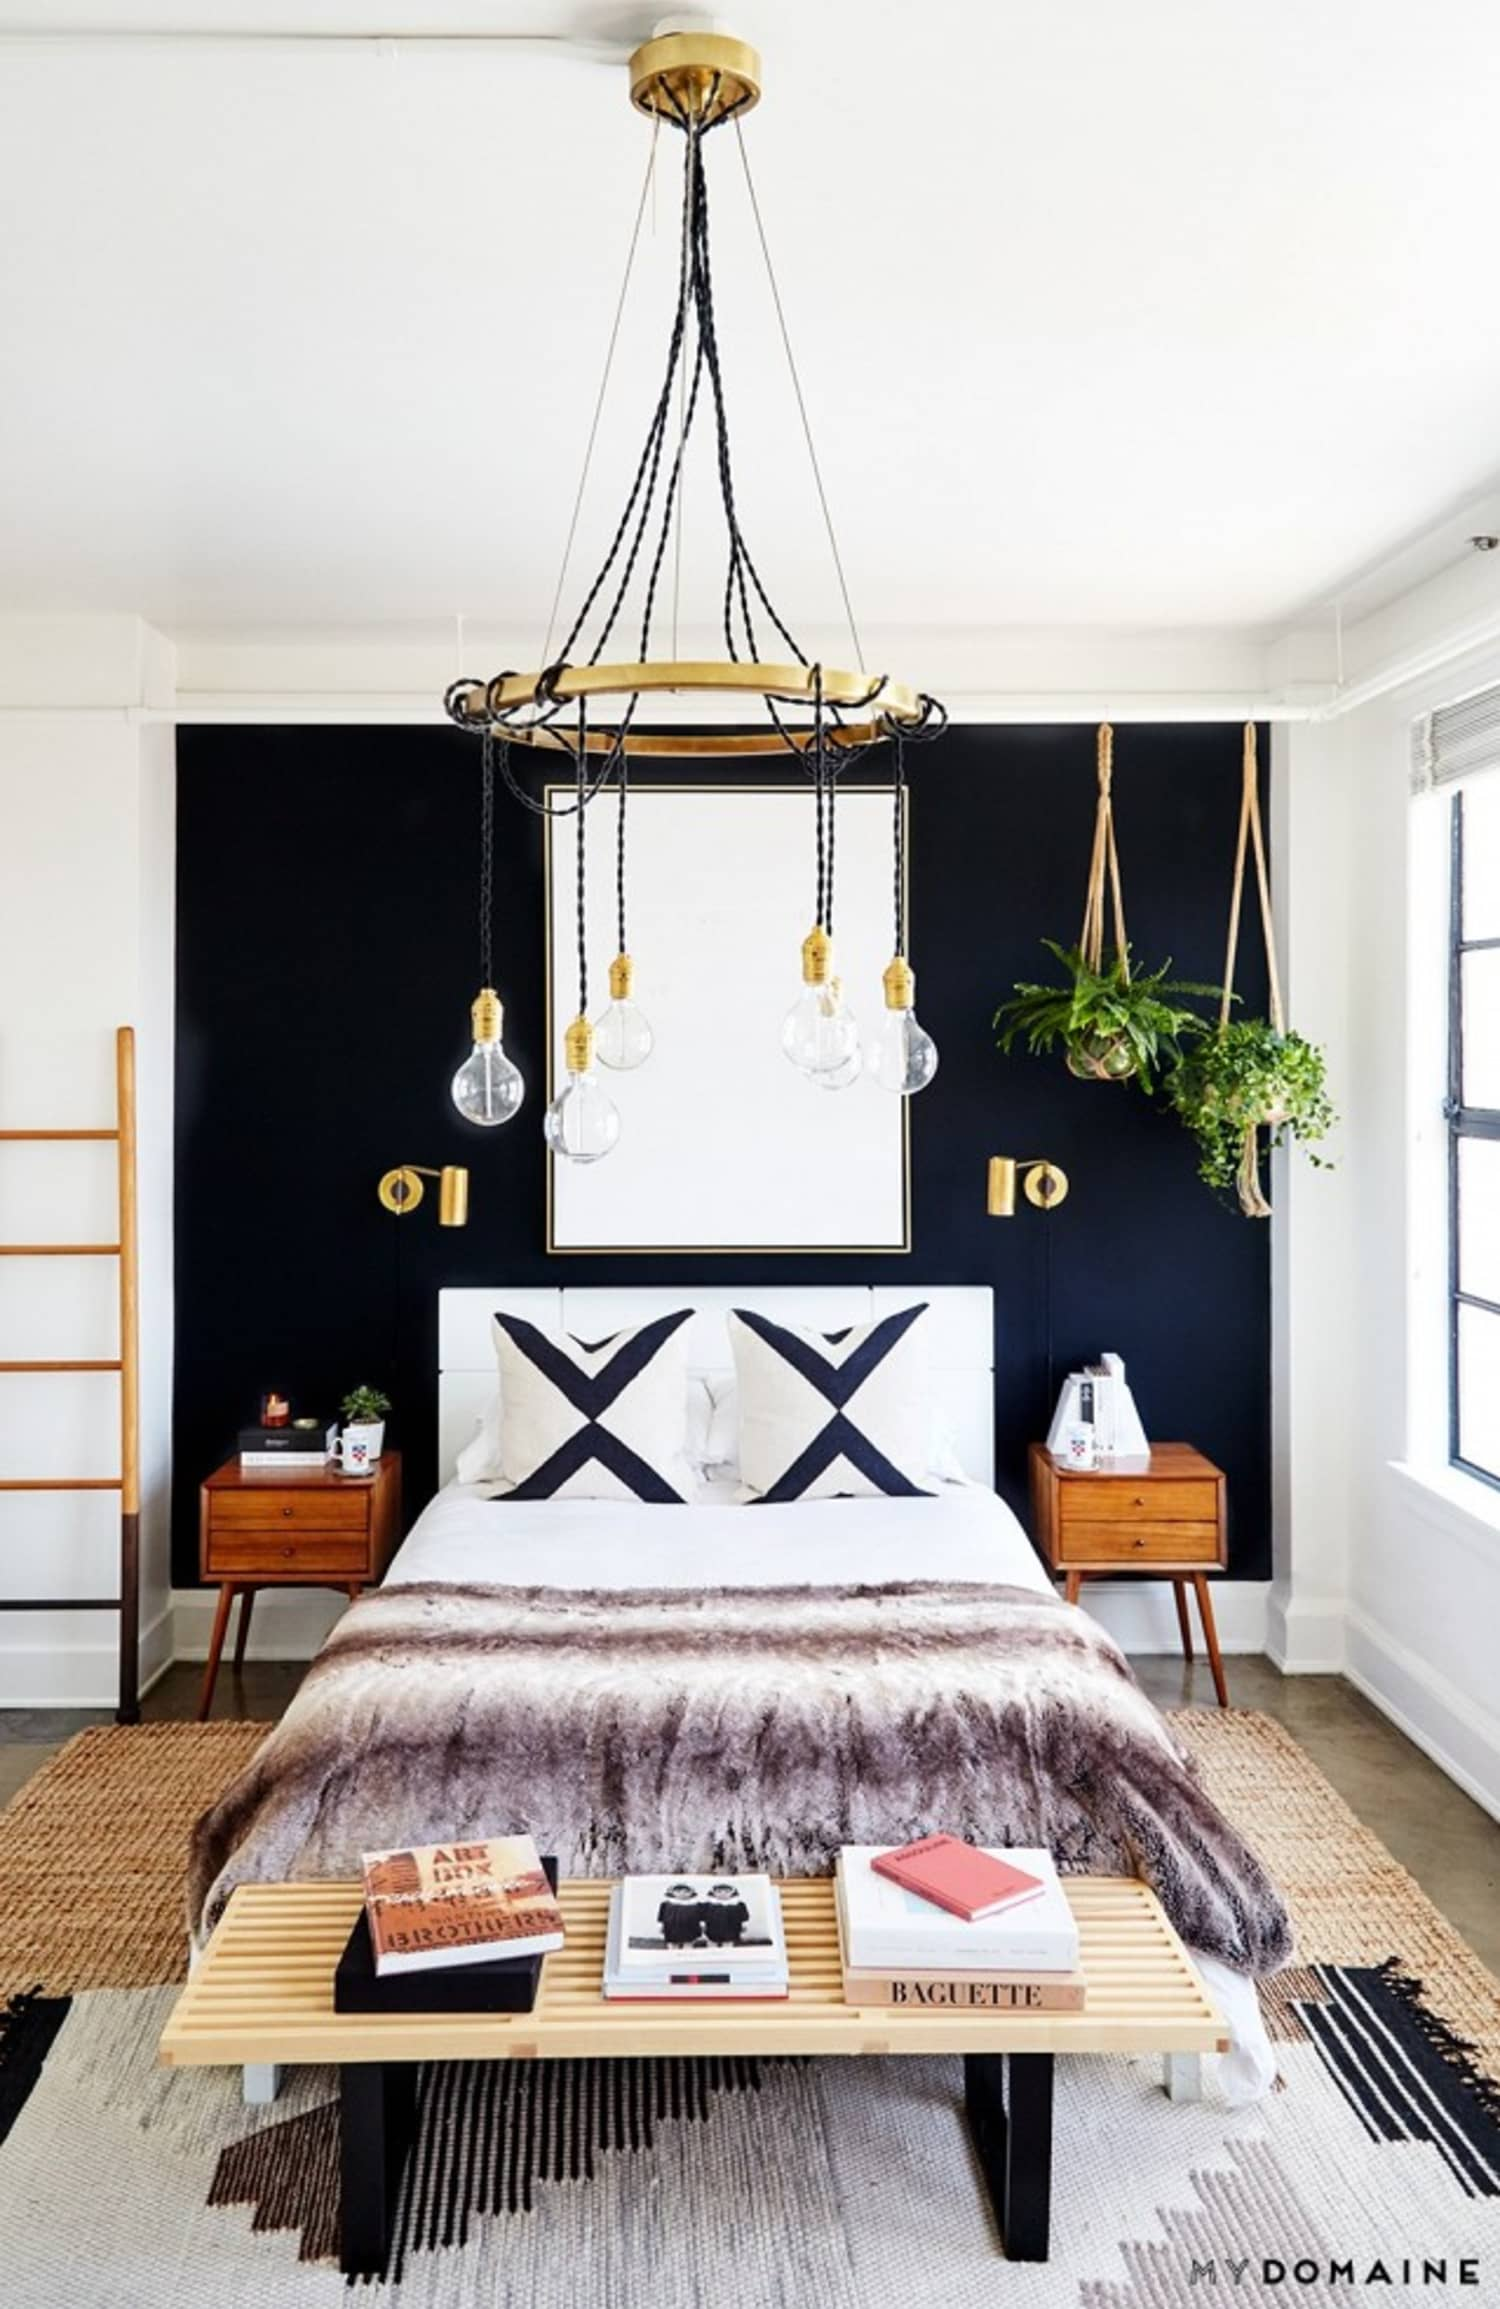 Build a Better Bedroom: How to Get The Look of These 4 Awesome Rooms at Home